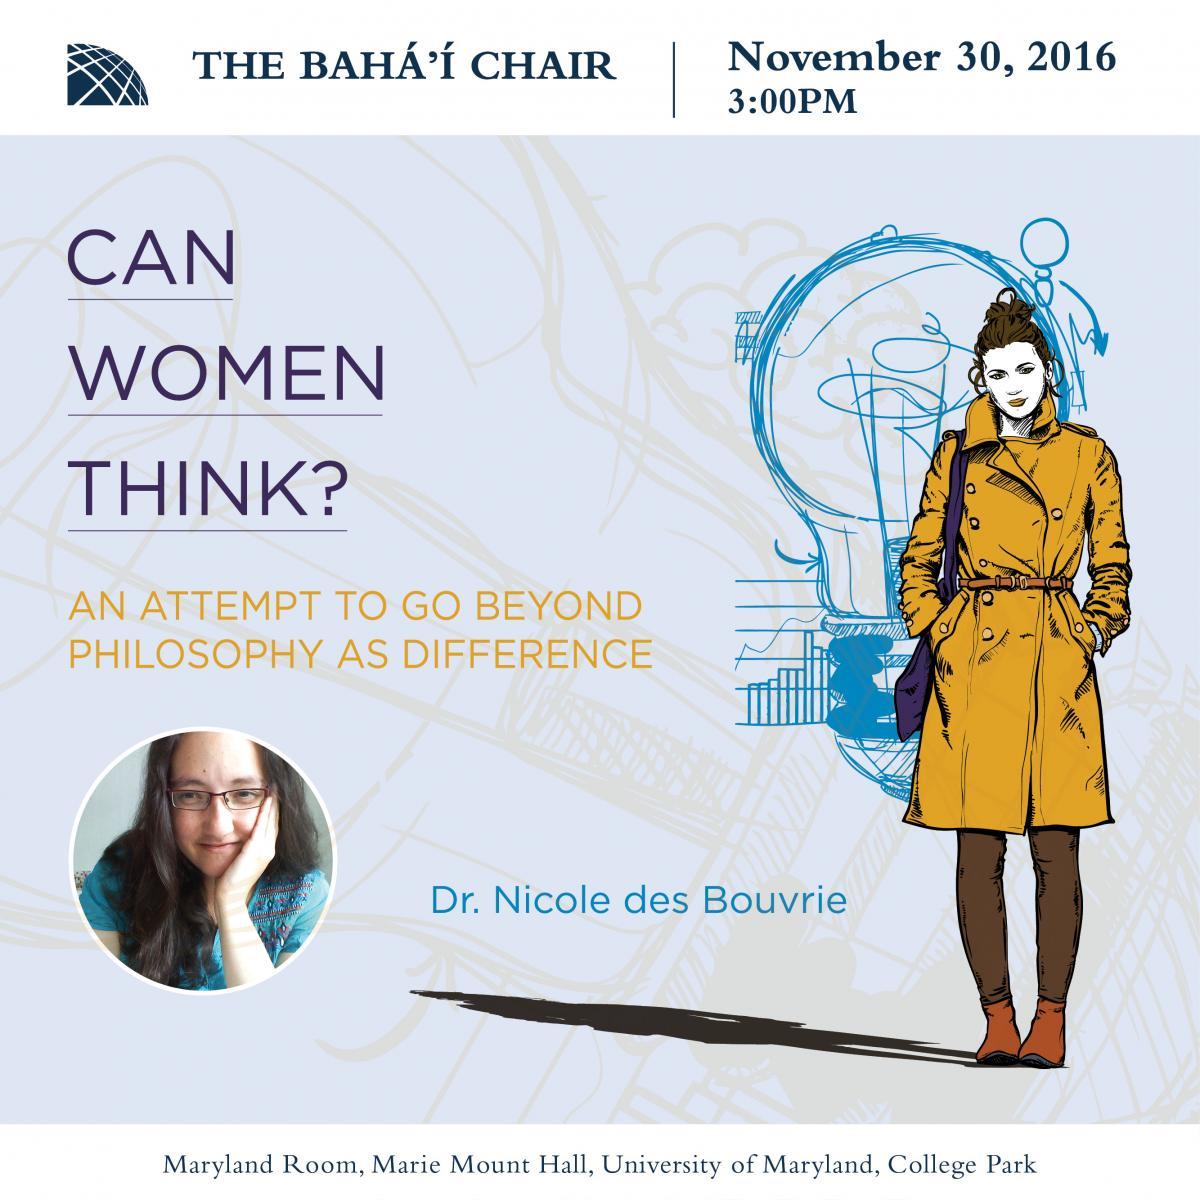 Can Women Think? A Contemplation and anInvitation